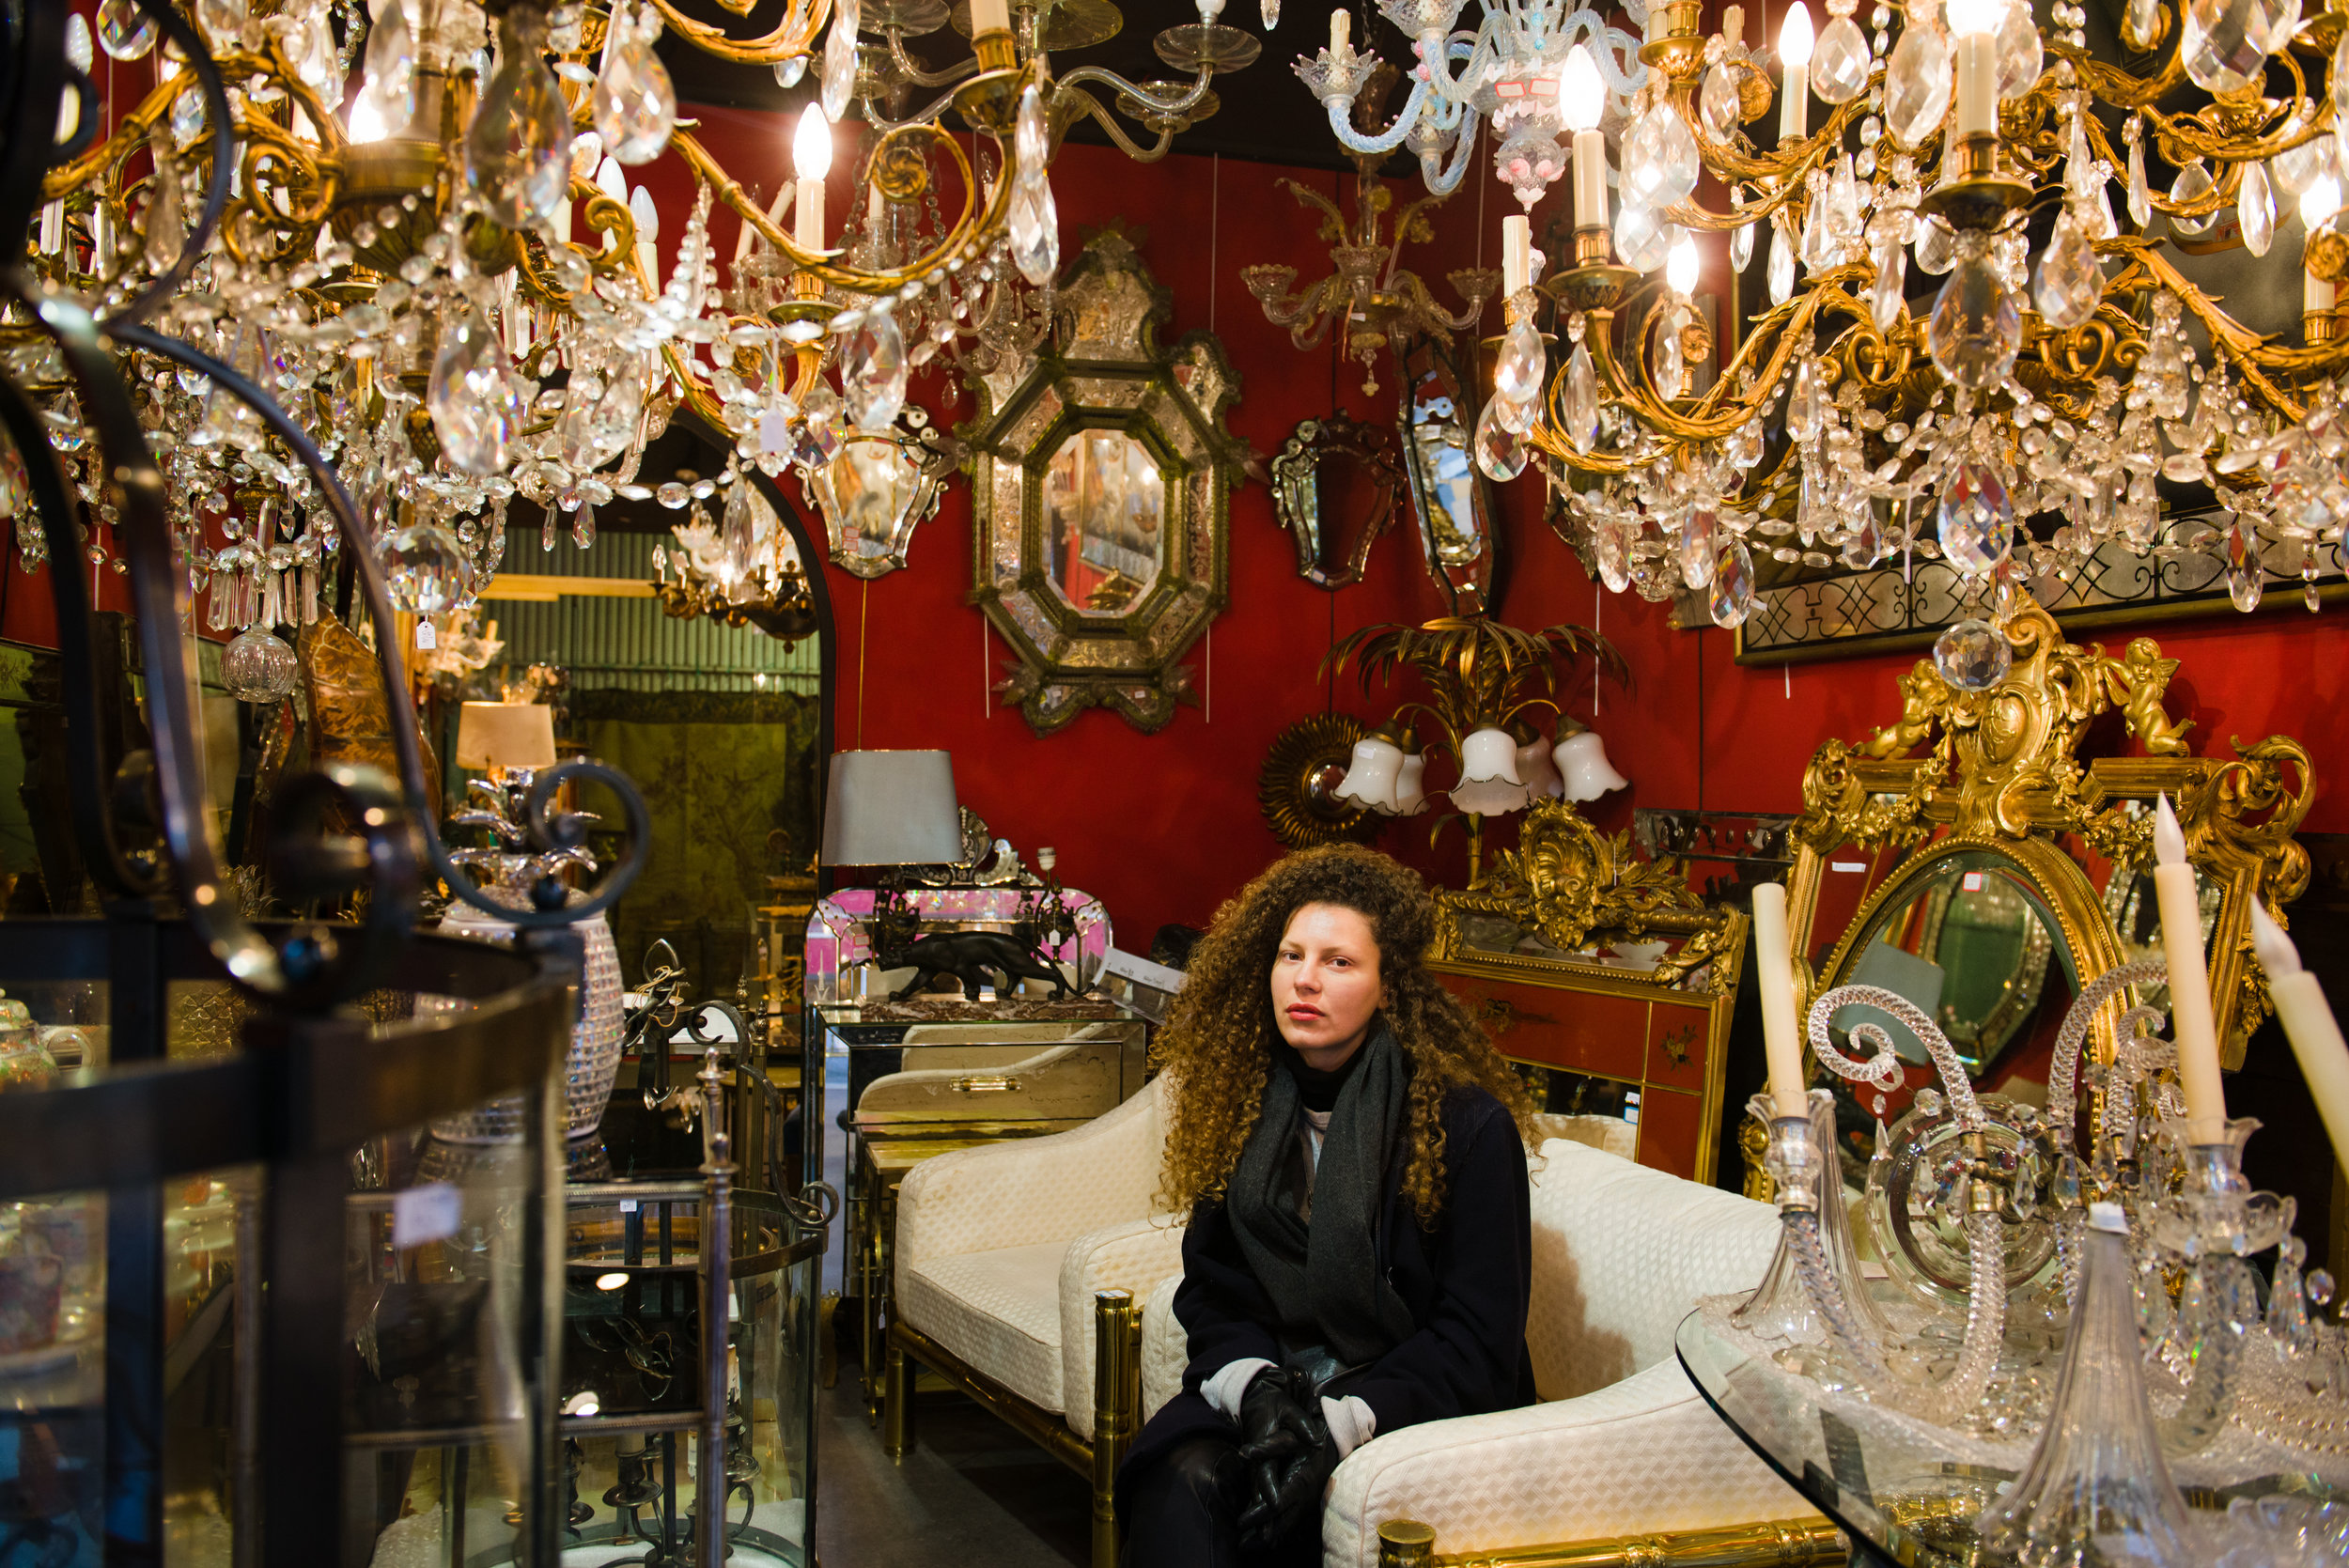 The subject is framed by the bric-a-brac of the store, in the Marché Aux Puces in Paris. Photo by William Lounsbury.